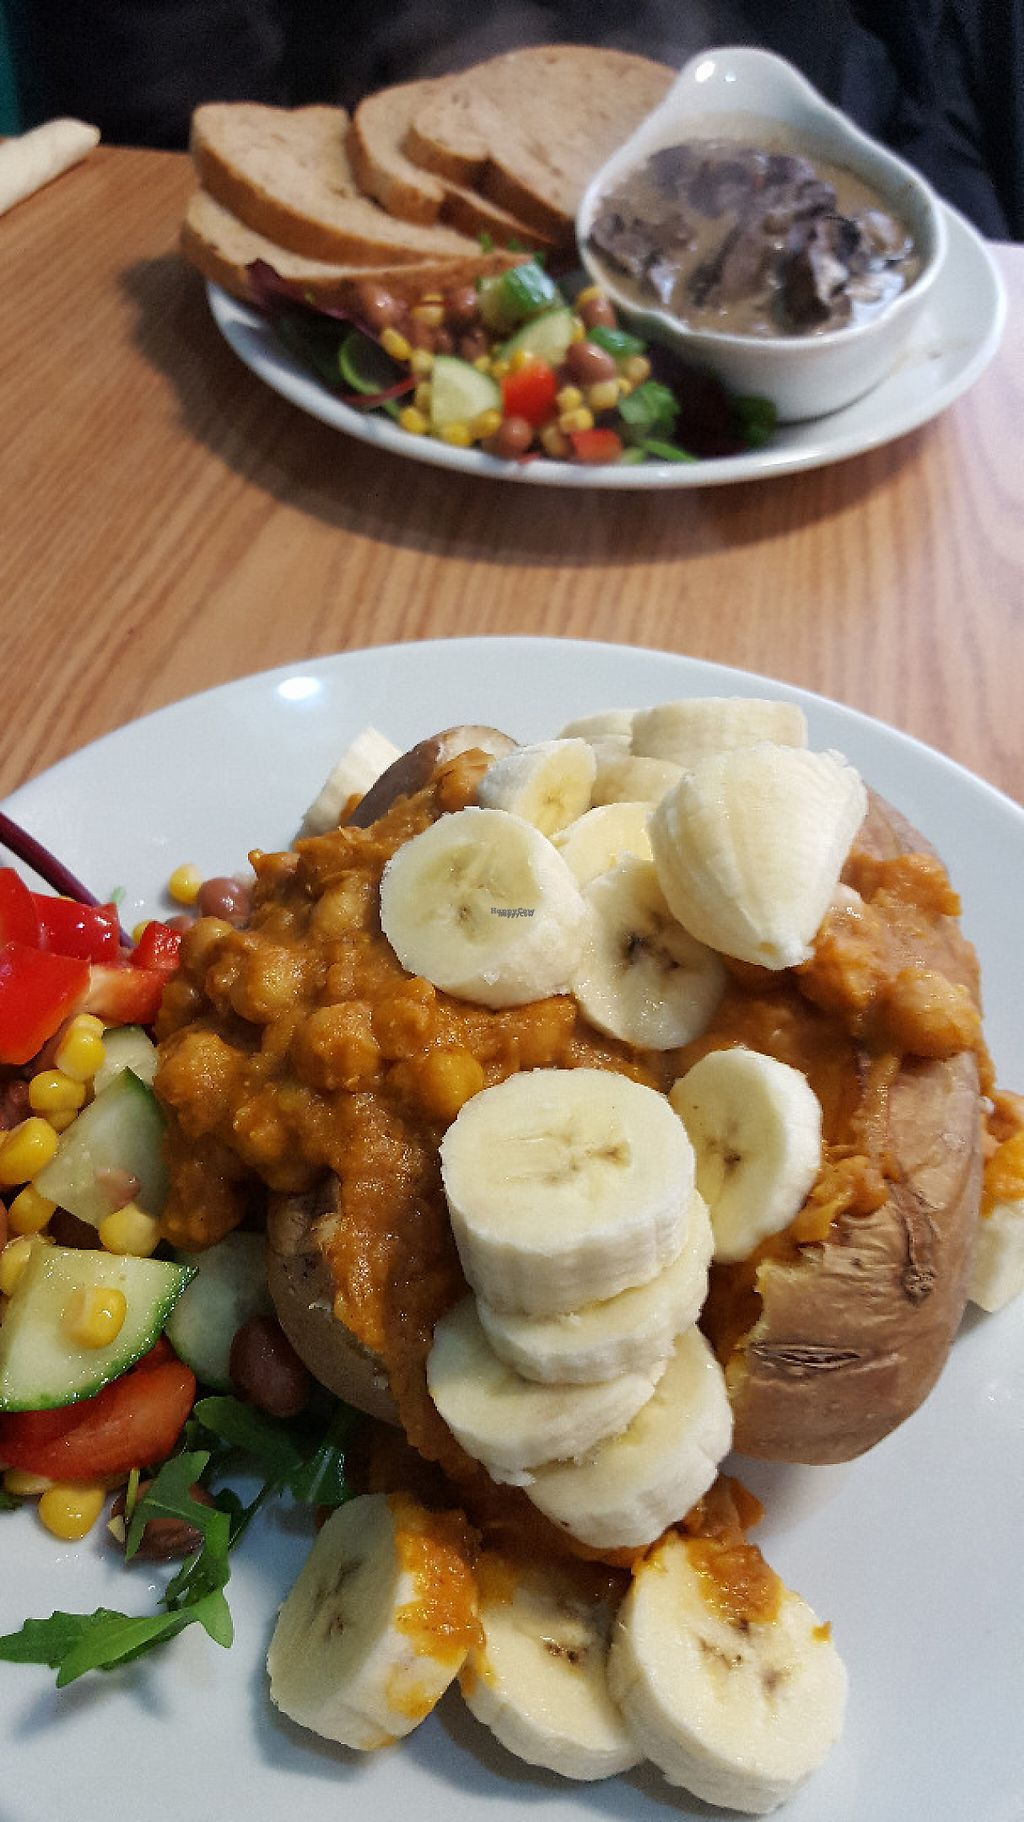 """Photo of PerryLicious Coffee and Cake Rooms  by <a href=""""/members/profile/VeganAnnaS"""">VeganAnnaS</a> <br/>Chickpea dhal with banana <br/> January 7, 2017  - <a href='/contact/abuse/image/73298/209107'>Report</a>"""